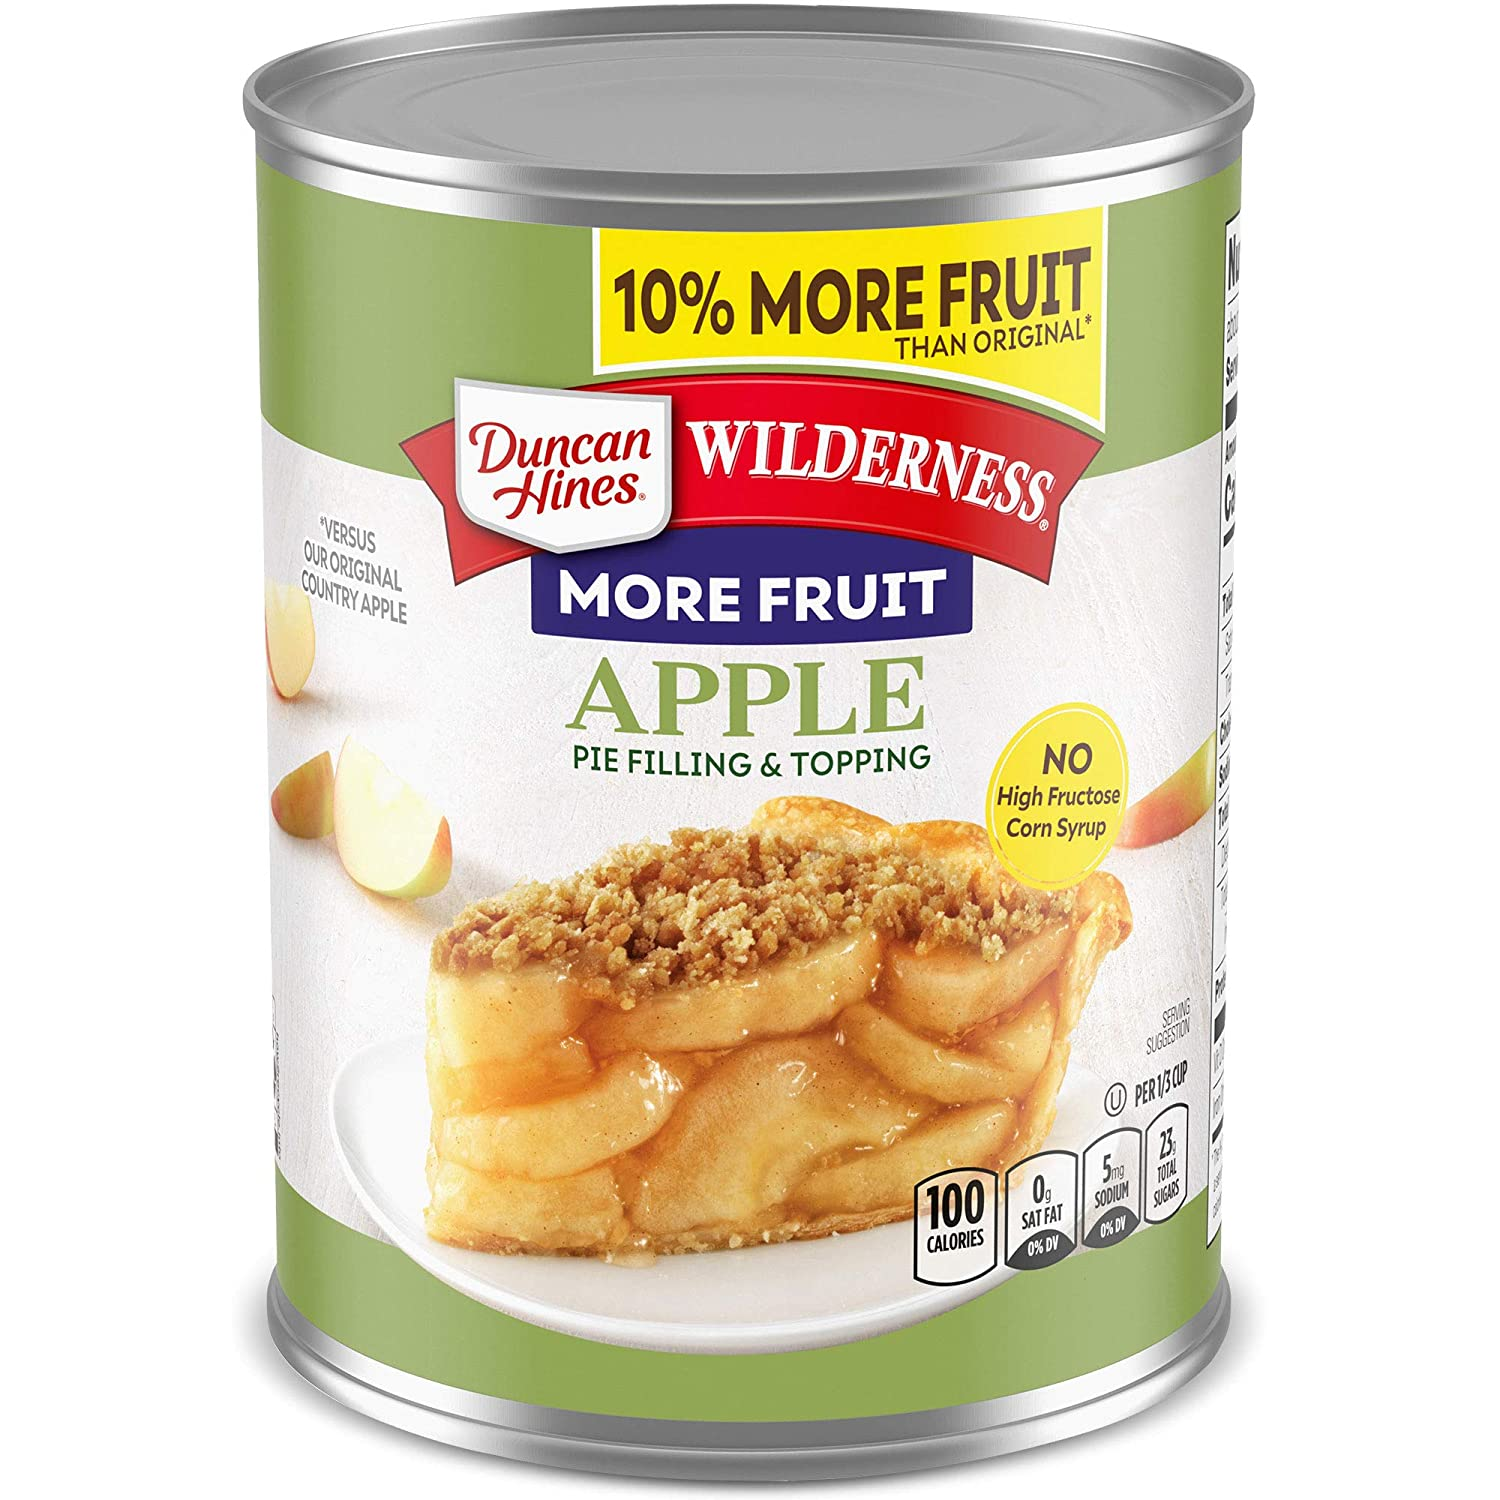 Duncan Hines Wilderness More Fruit Pie Filling & Topping, Apple, 21 Ounce (Pack of 12)